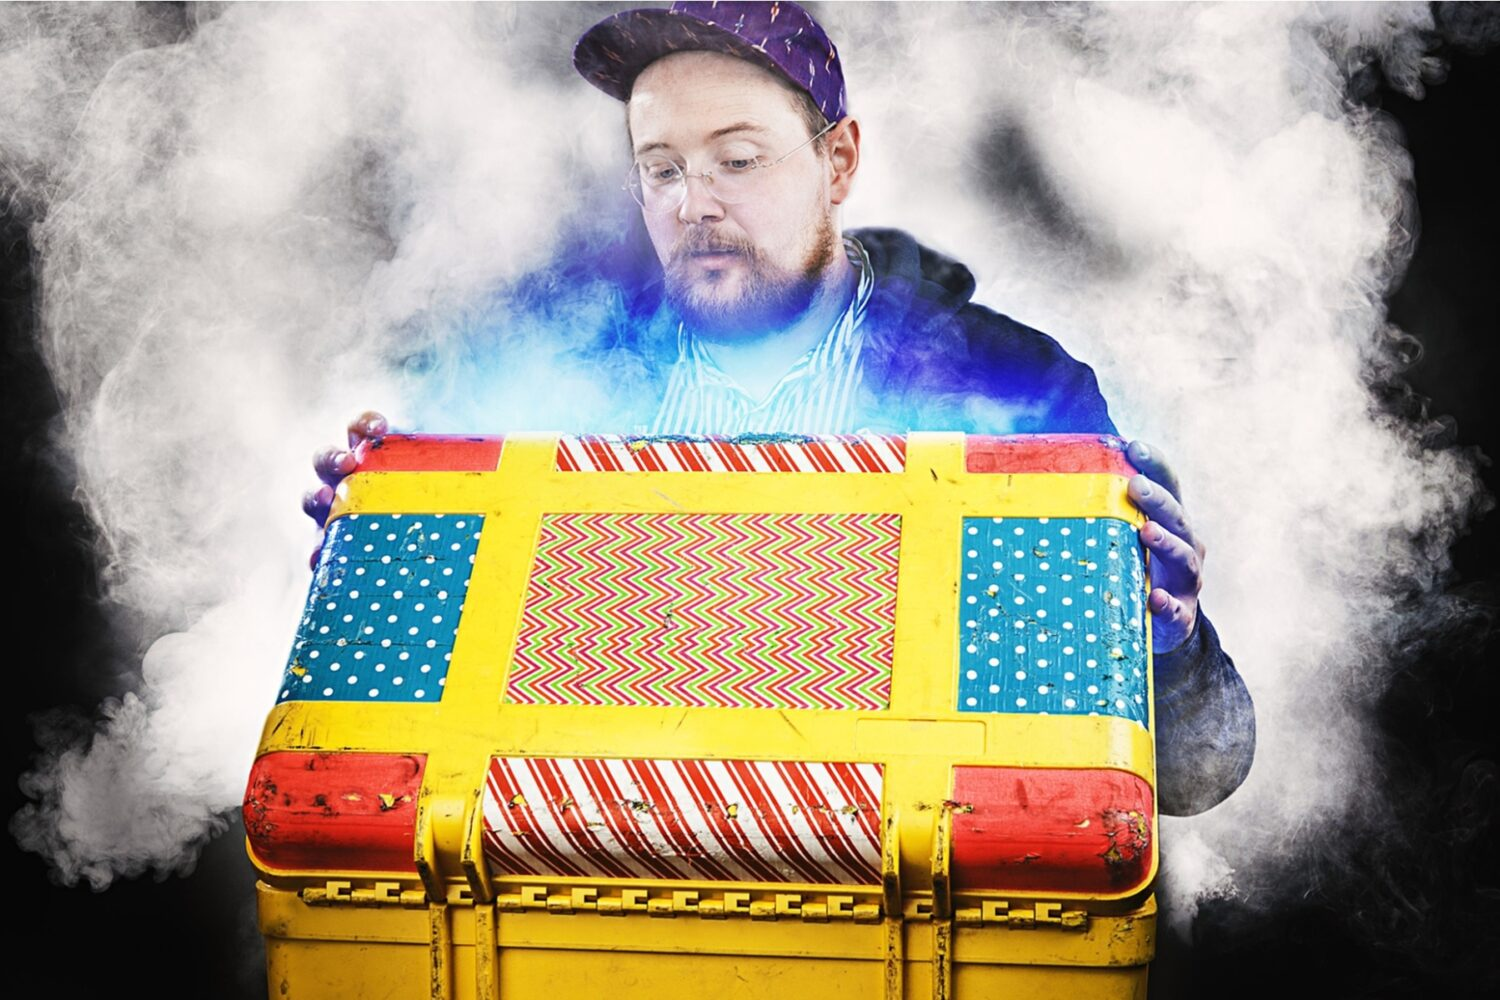 Dan Deacon reveals animated 'When I Was Done Dying' video